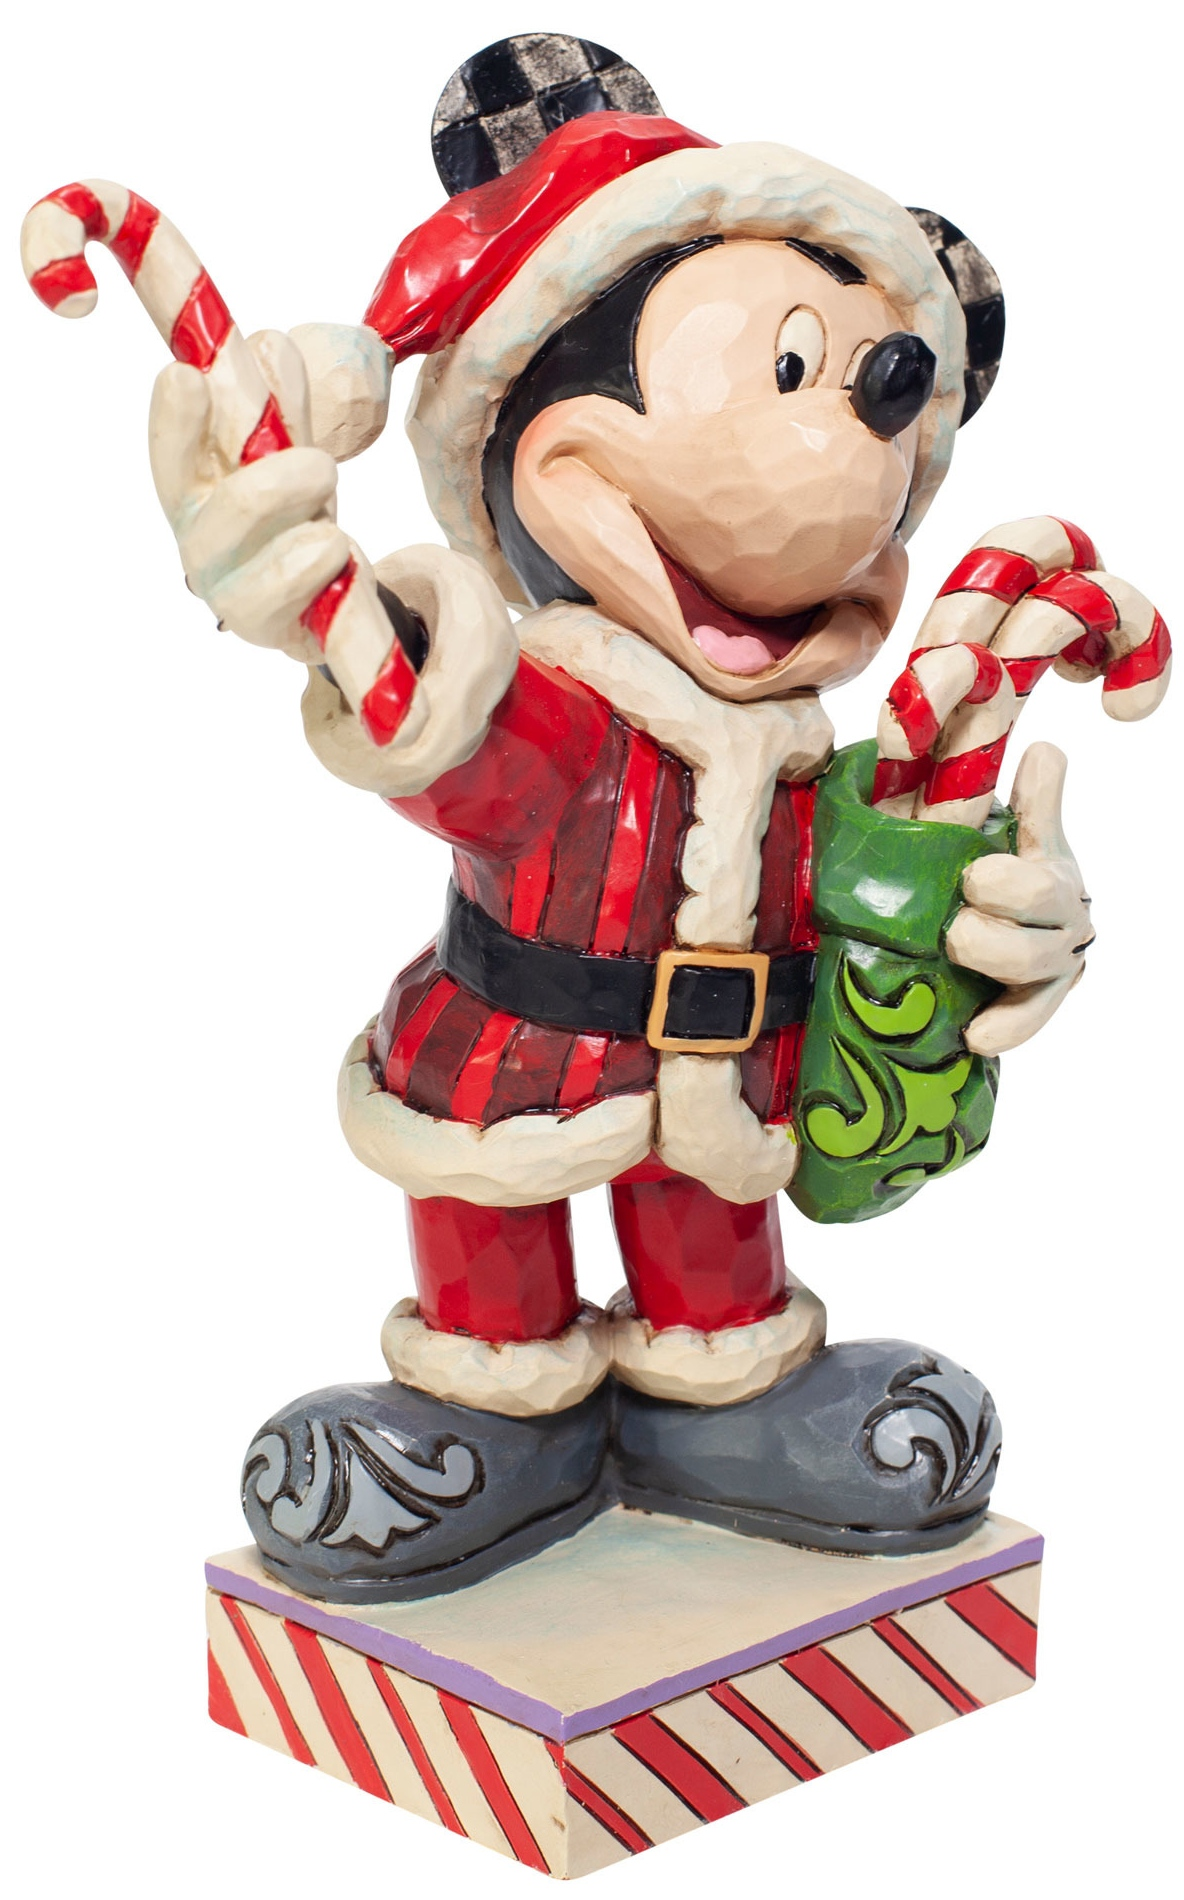 Disney Traditions by Jim Shore 6007068 Santa Mickey with Candy Figurine